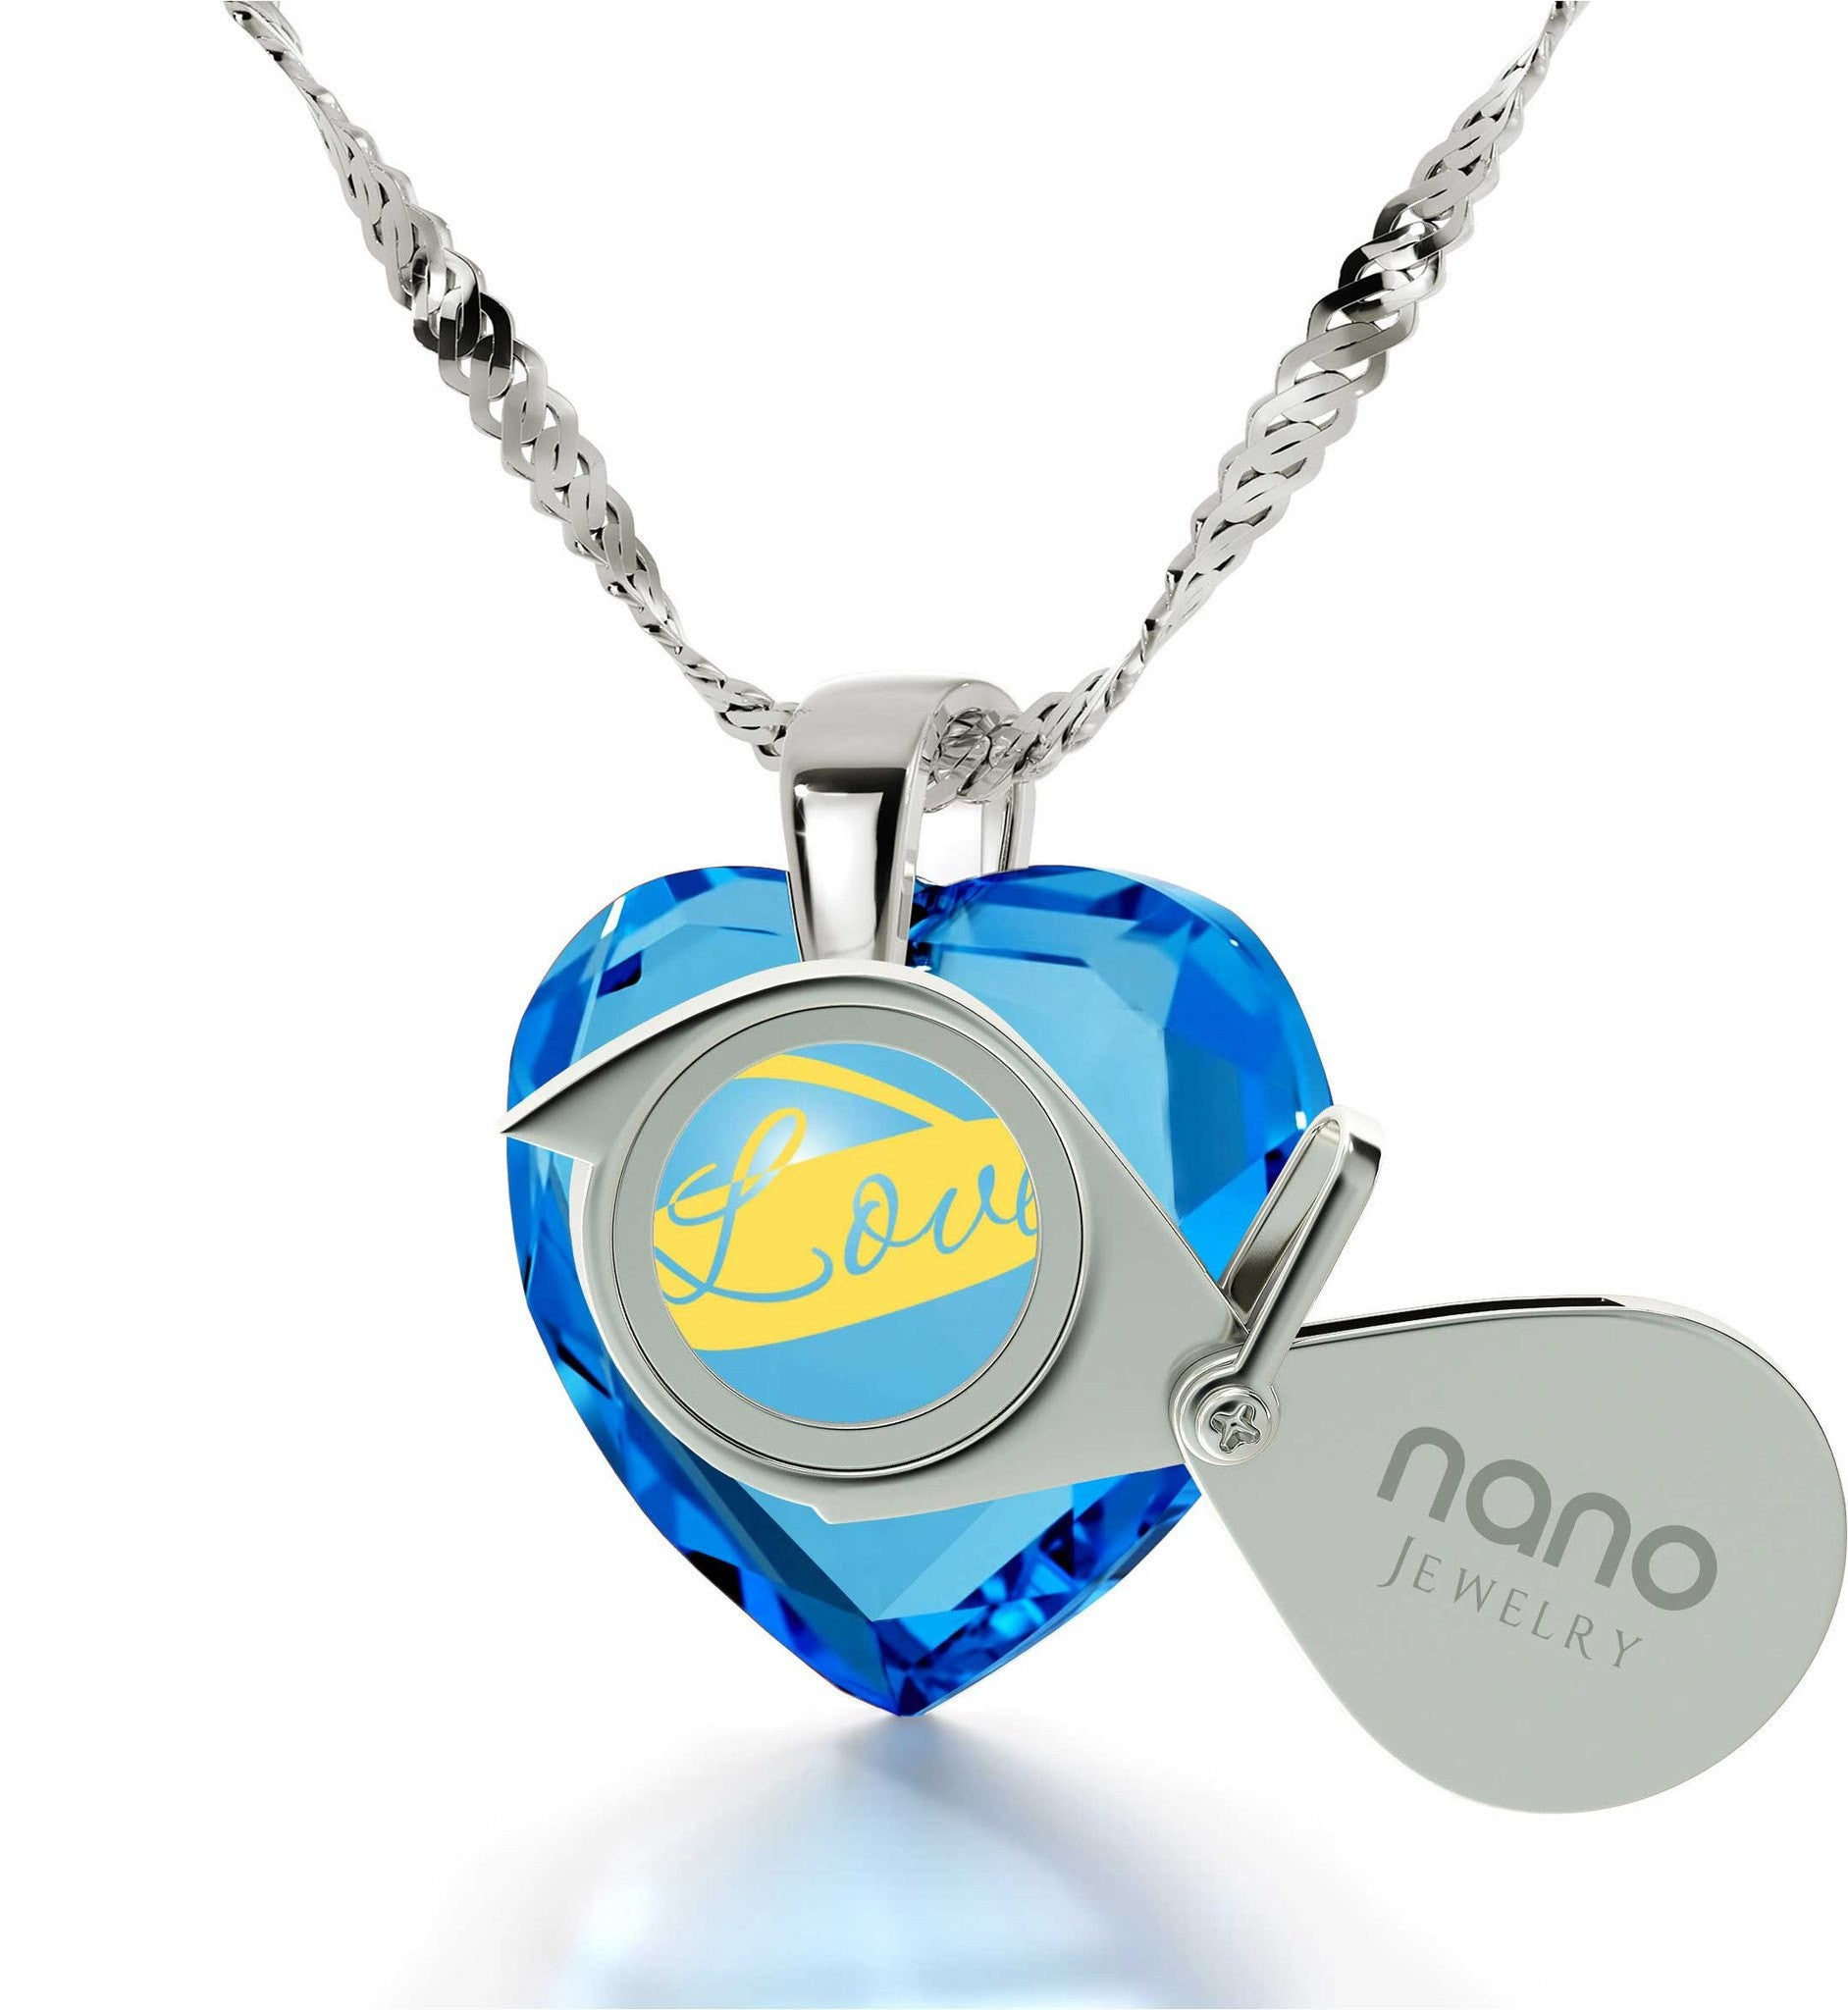 Heart Necklaces for Girlfriend, Sterling Silver Necklace, 24k Imprint,Pure Romance Products, by Nano Jewelry